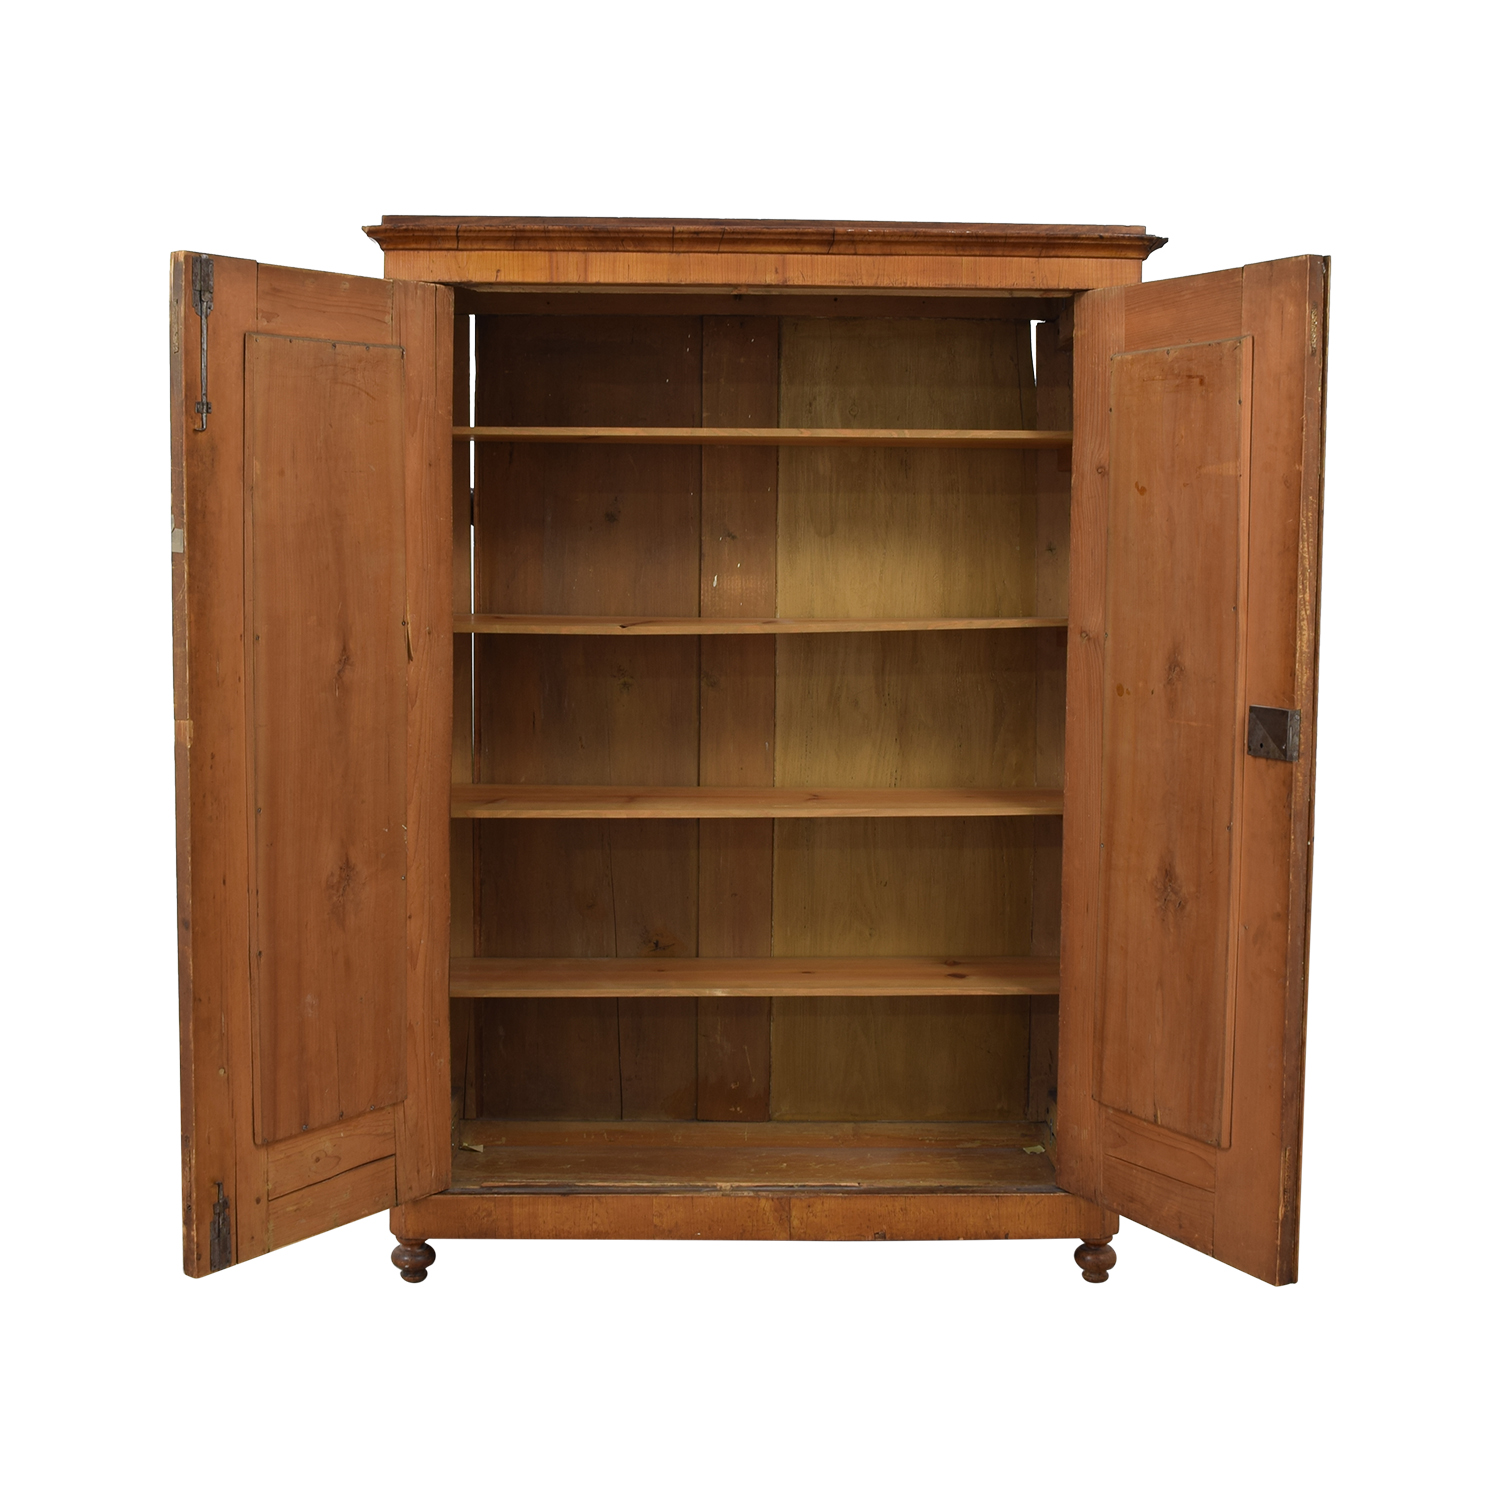 Wood Wardrobe Armoire with Shelves Wardrobes & Armoires